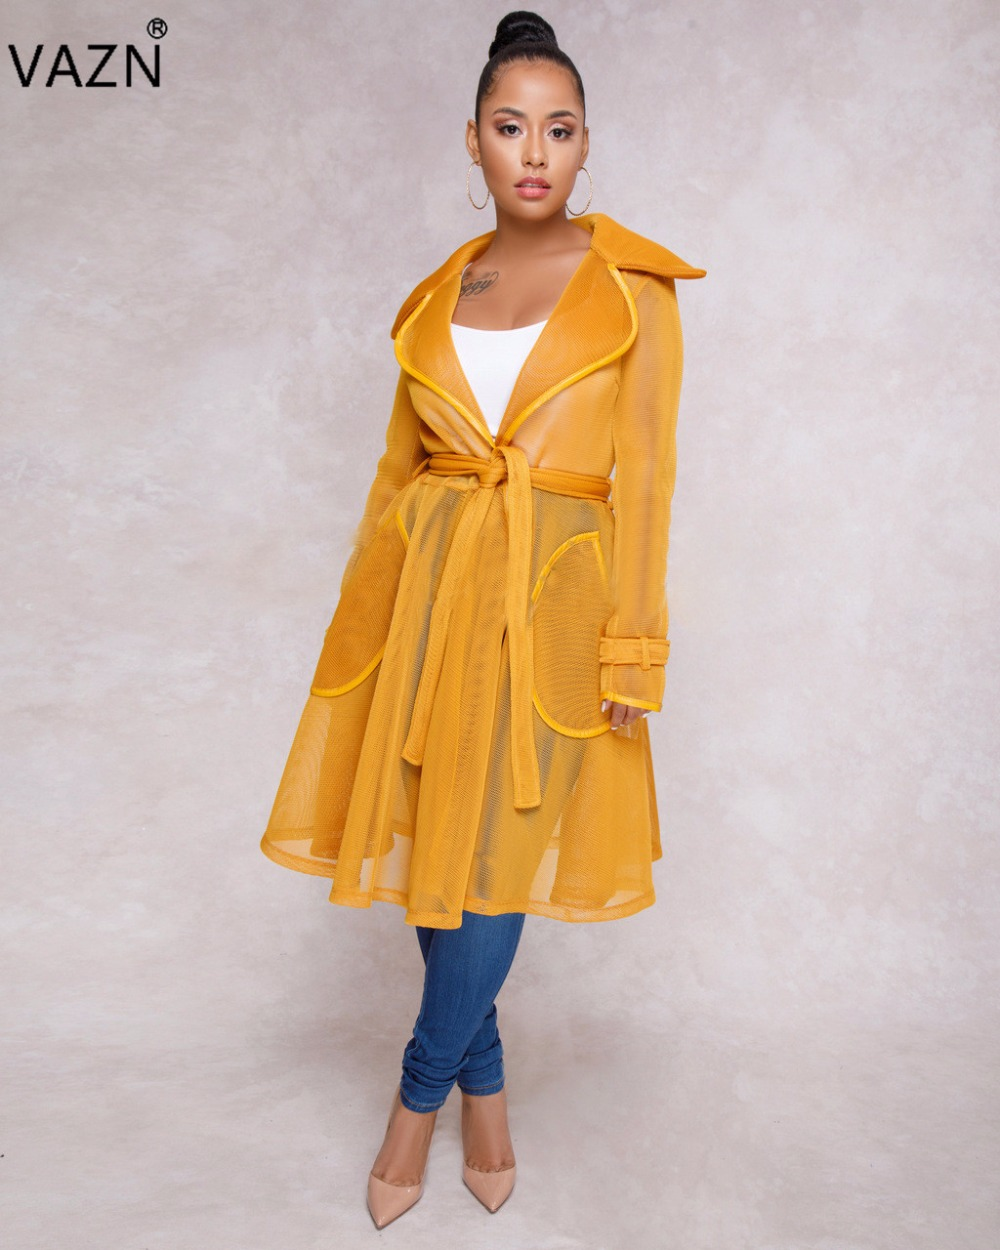 VAZN Autumn 2018 High Quality Temperate Casual Fashion Women Ball Gown Dress Solid Full Sleeve Lady Overalls Midi Dress MK0547